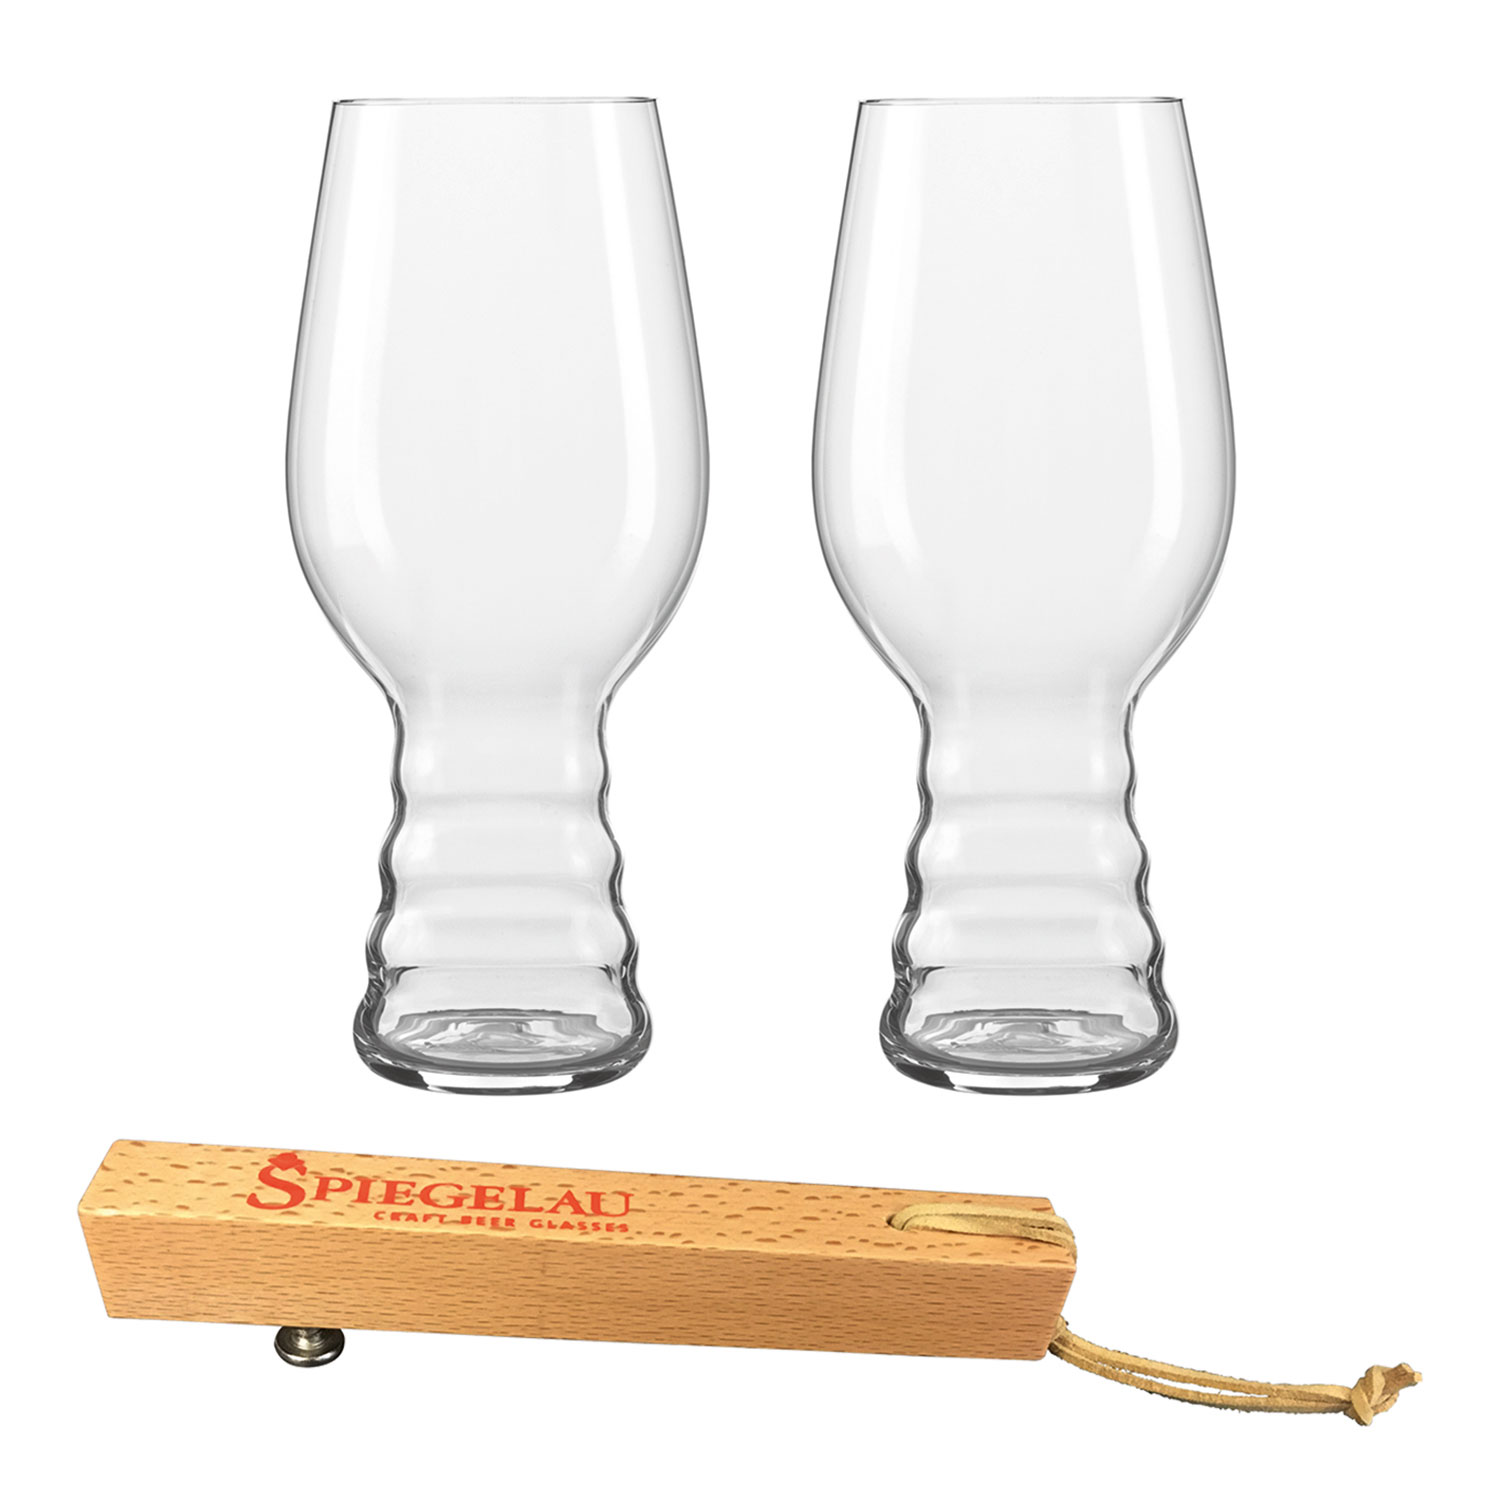 Spiegelau-Craft-Beer-Glass-Experience-Ipa-Set